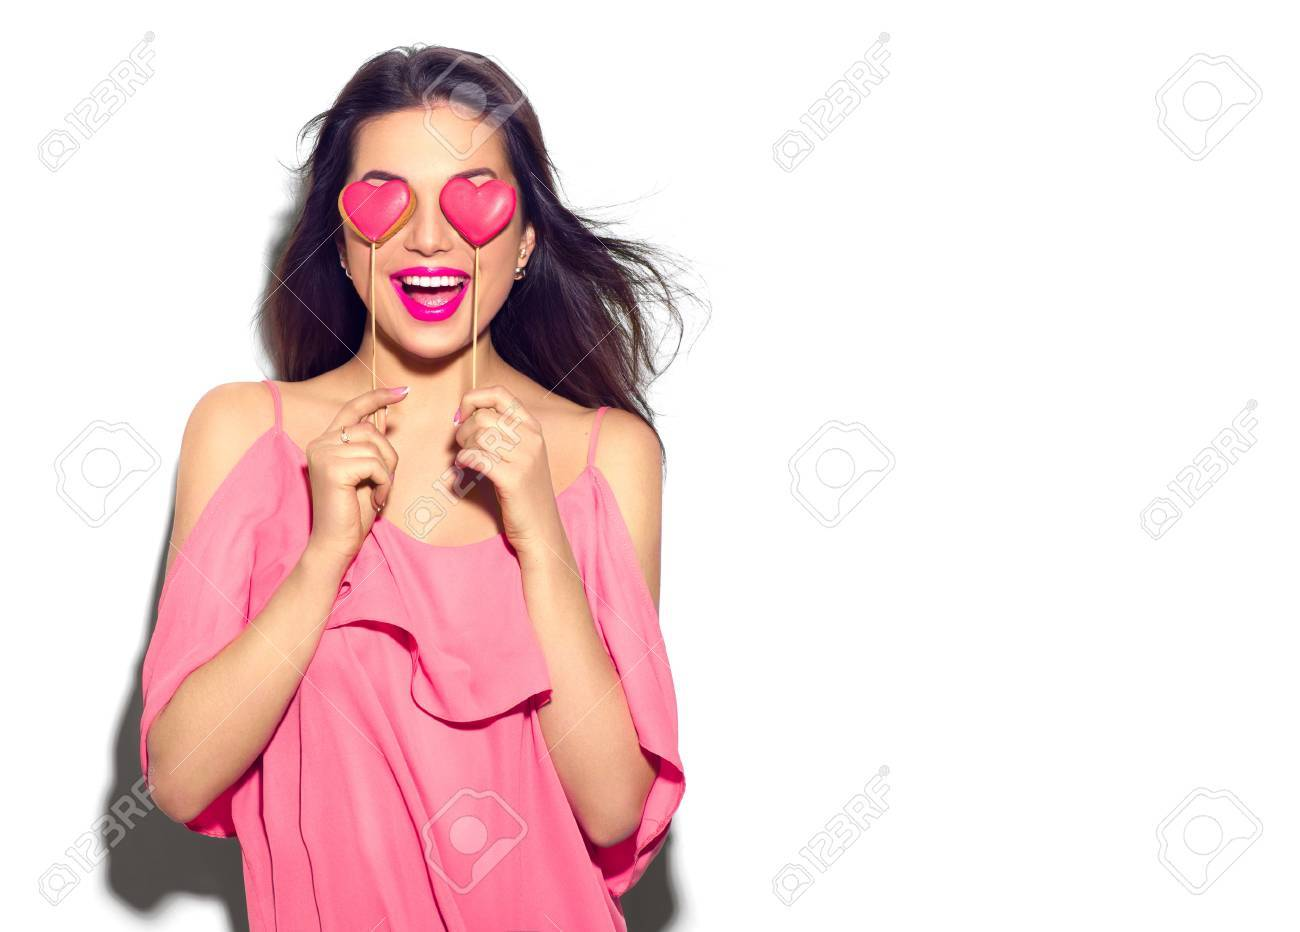 Valentines Day. Beauty joyful young fashion model girl with Valentine Heart shaped cookies in her hands Banque d'images - 69431335